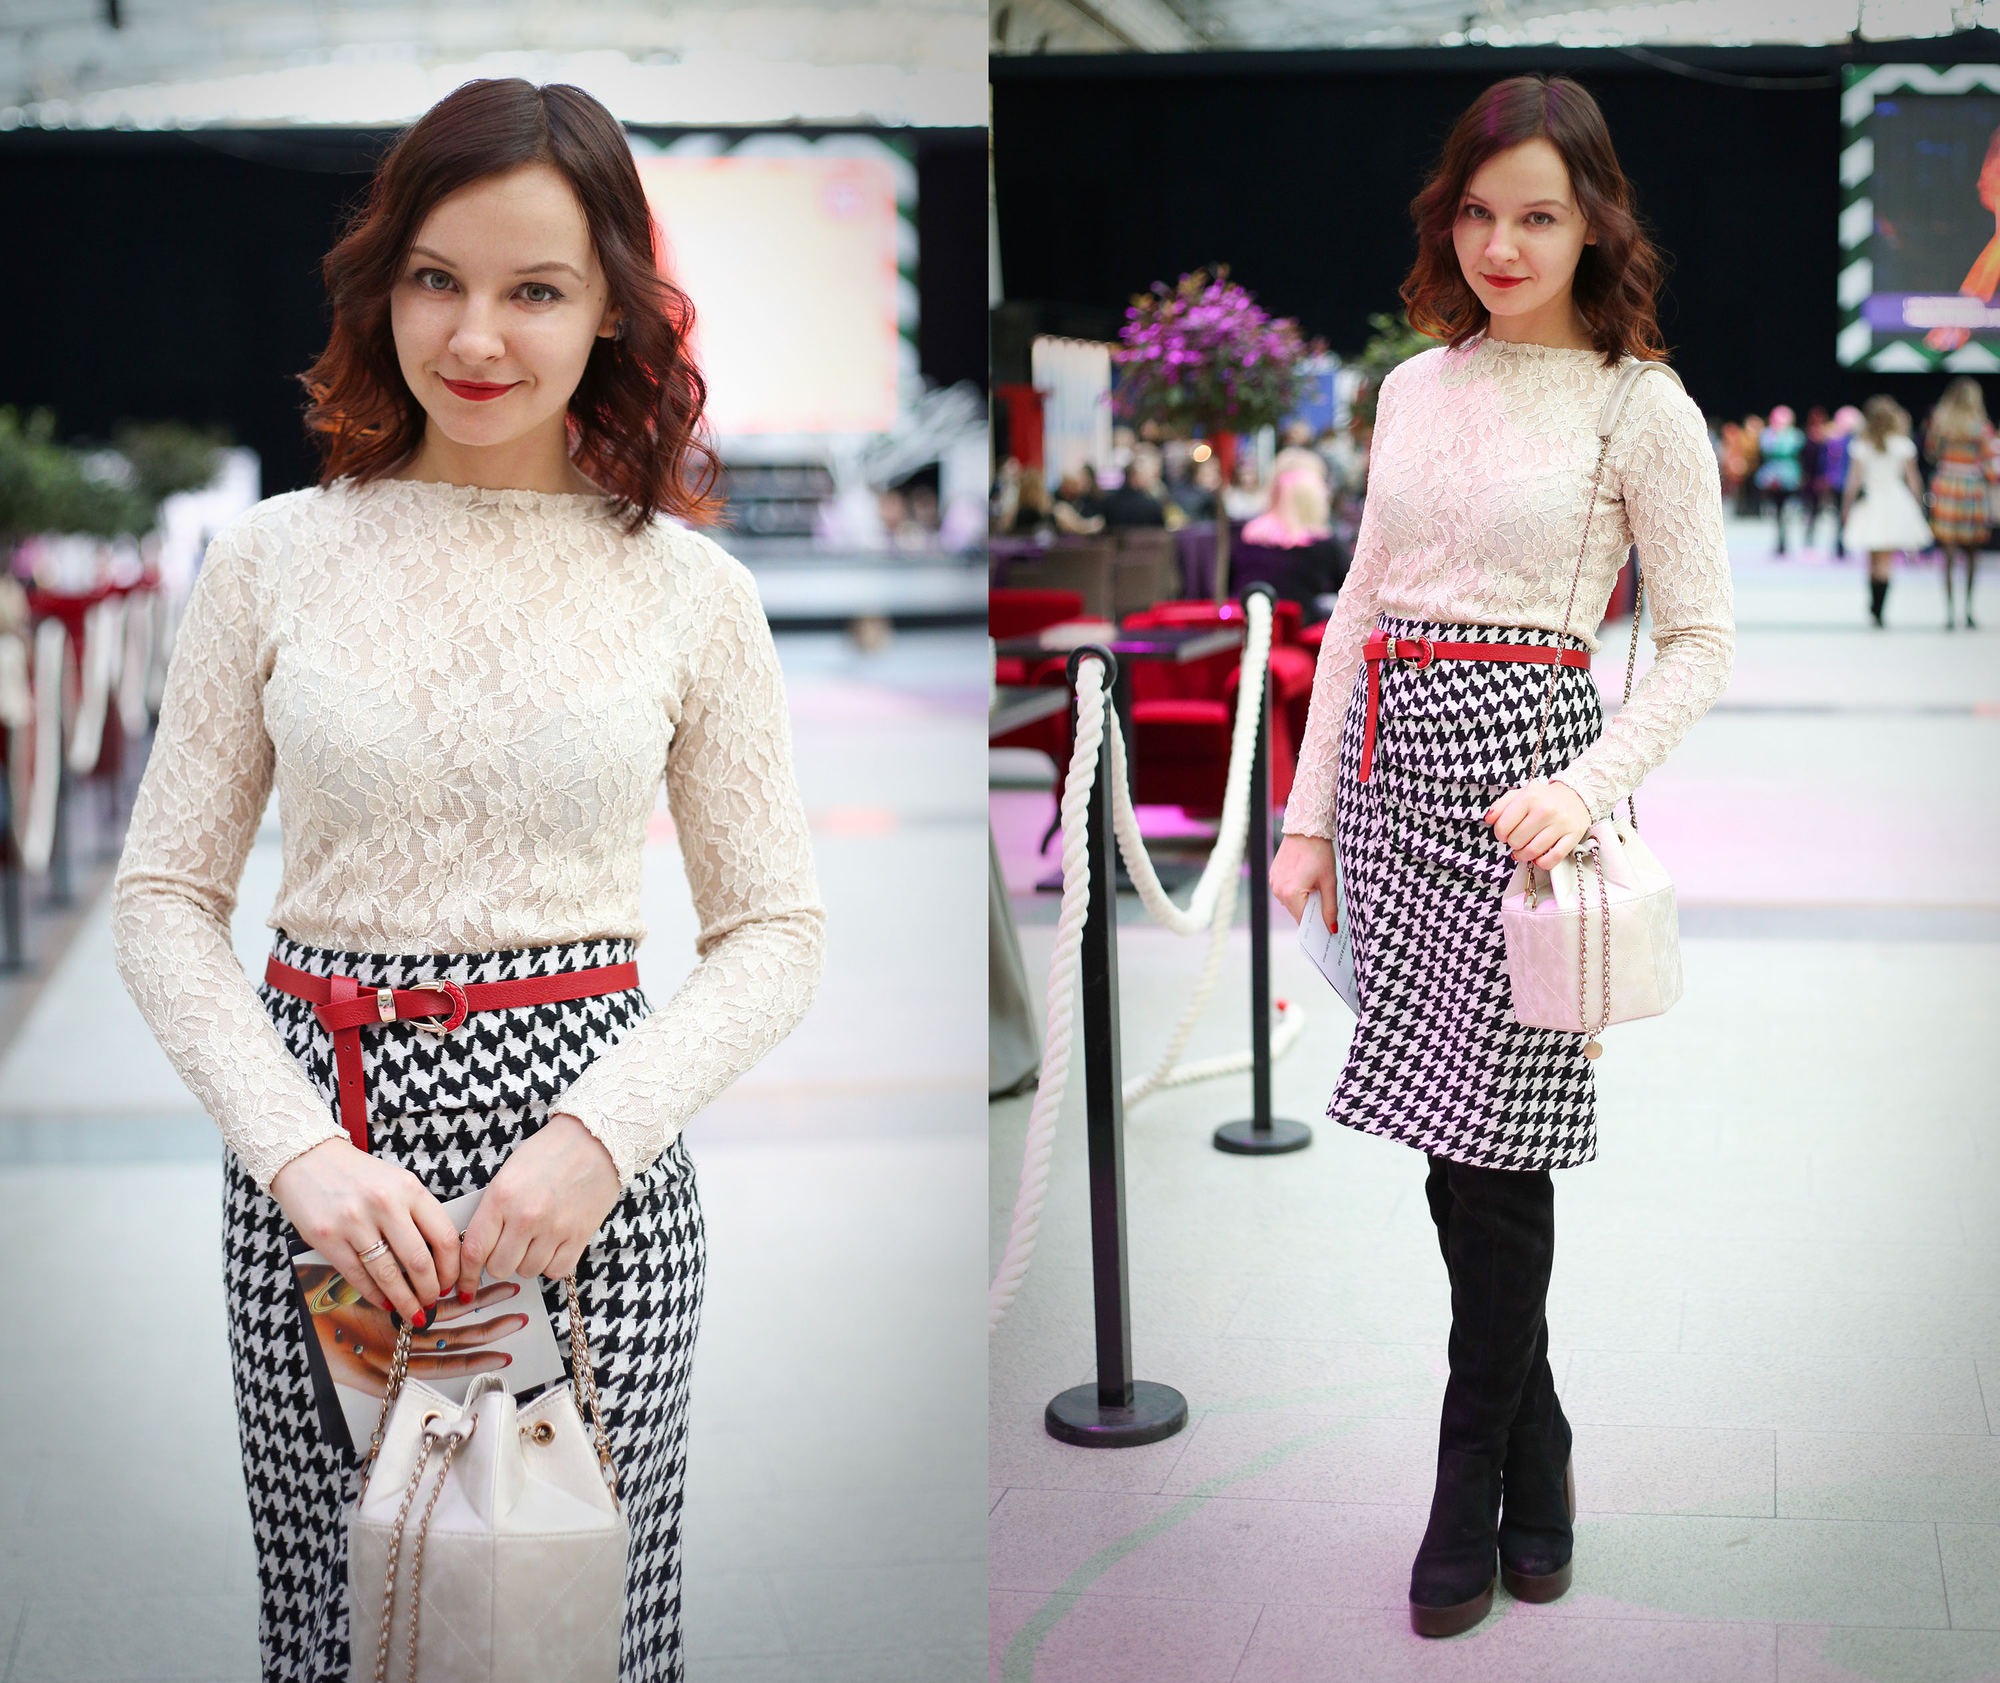 Outfit 2. Moscow Fashion Week